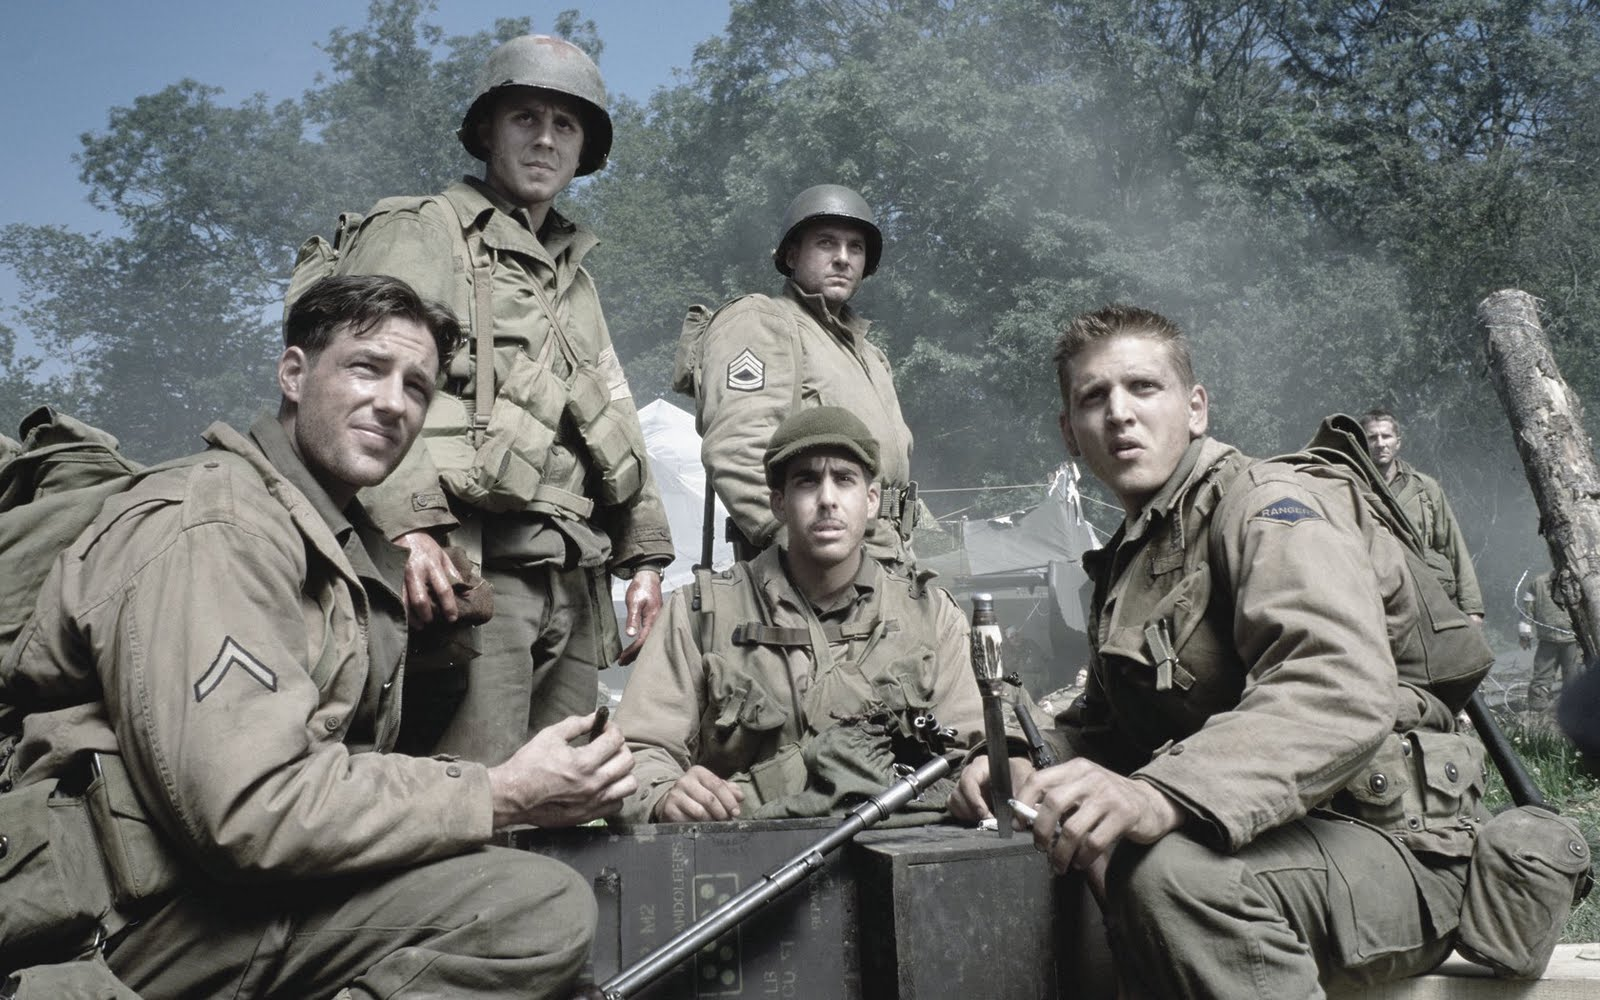 Year 10 saving private ryan essay